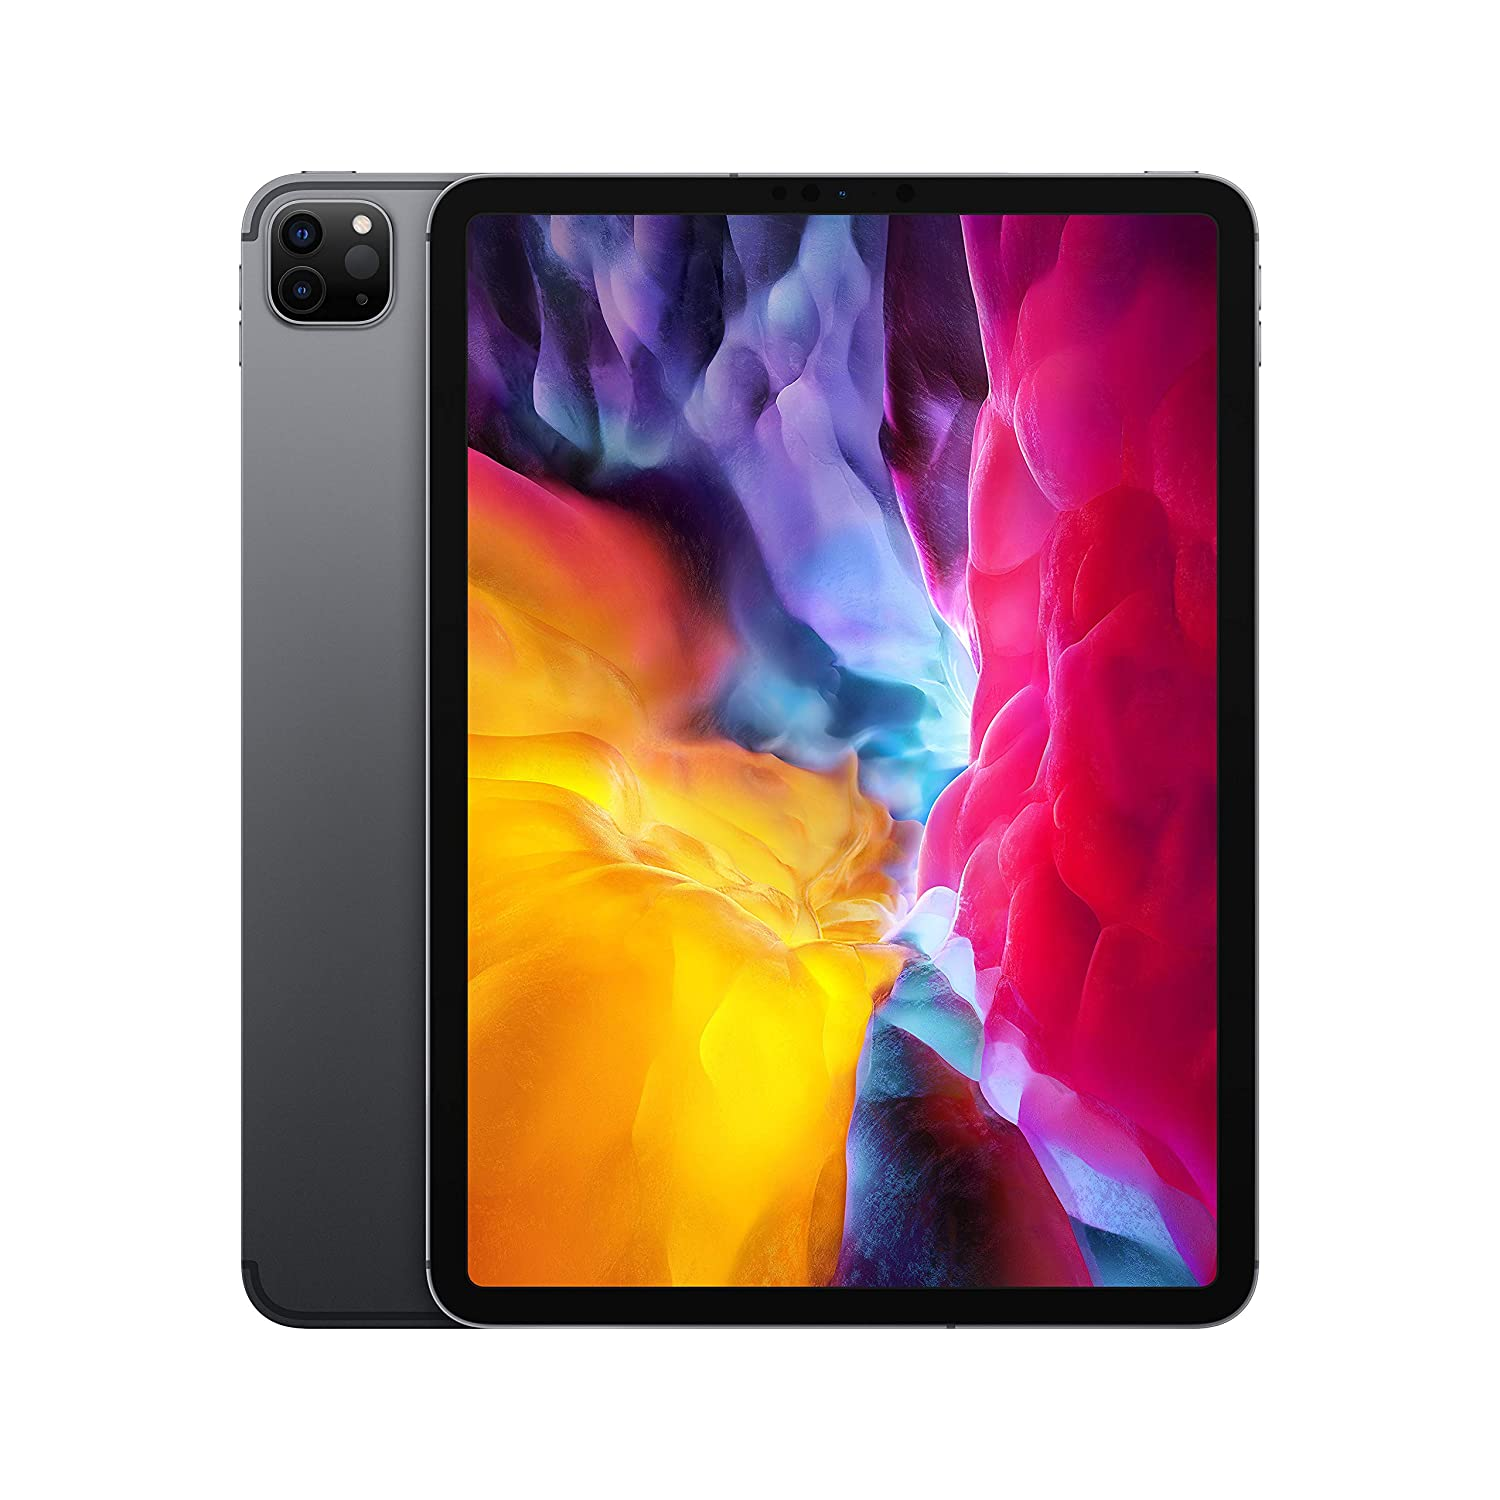 Apple iPad Pro 11-inch 2nd Gen in Stock on Amazon India